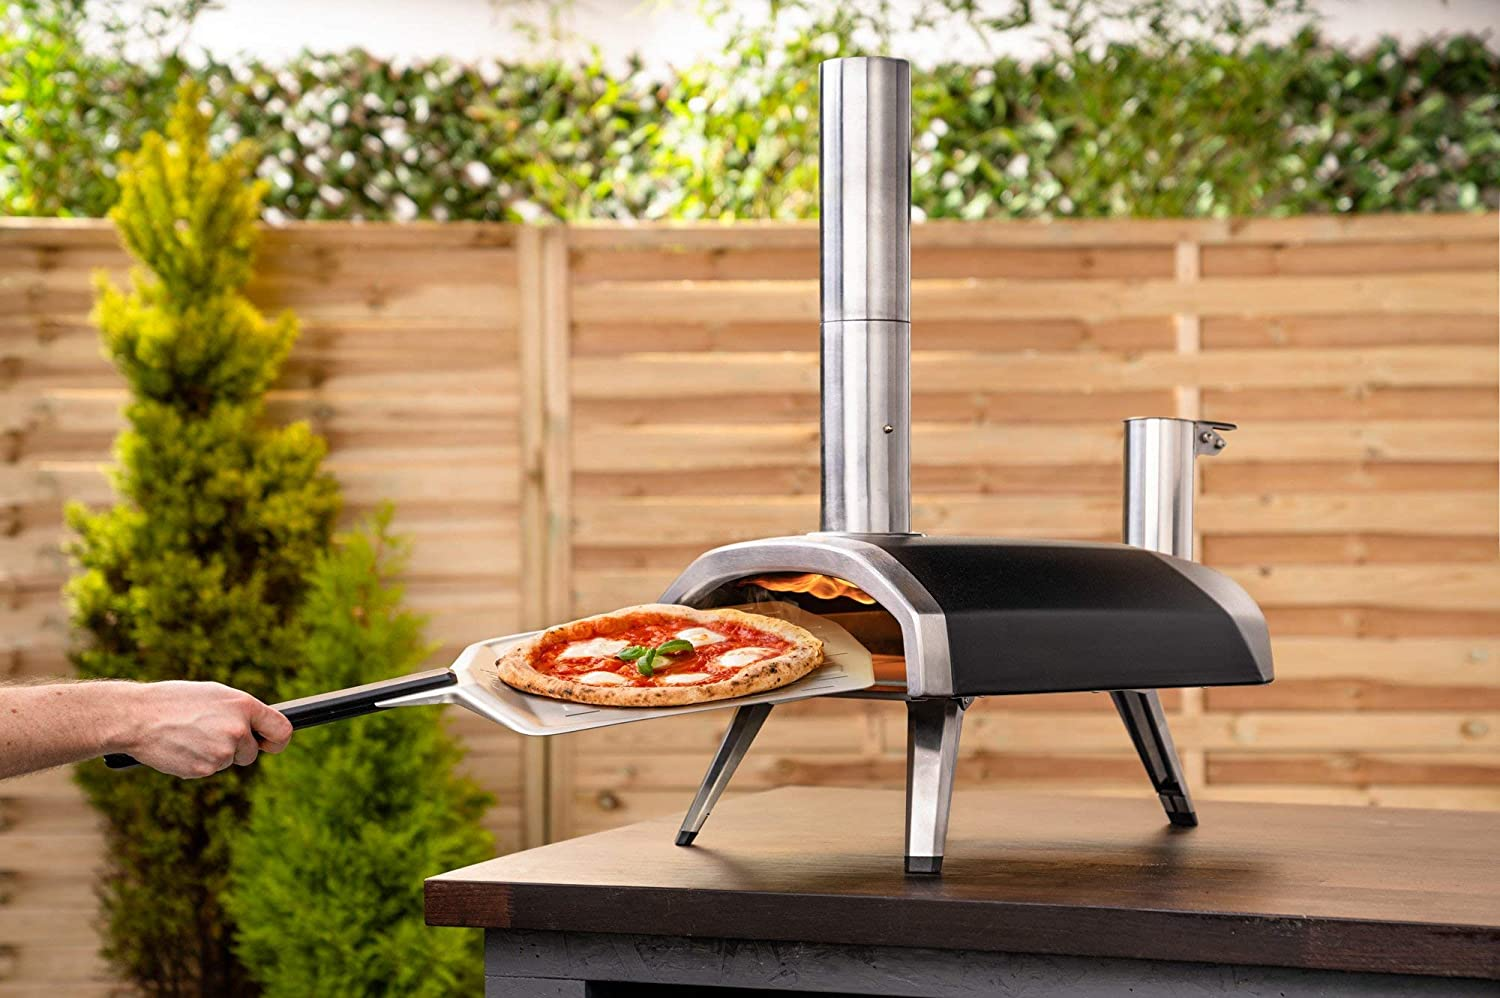 Ooni Fyra 12 Wood Fired Outdoor Pizza Oven